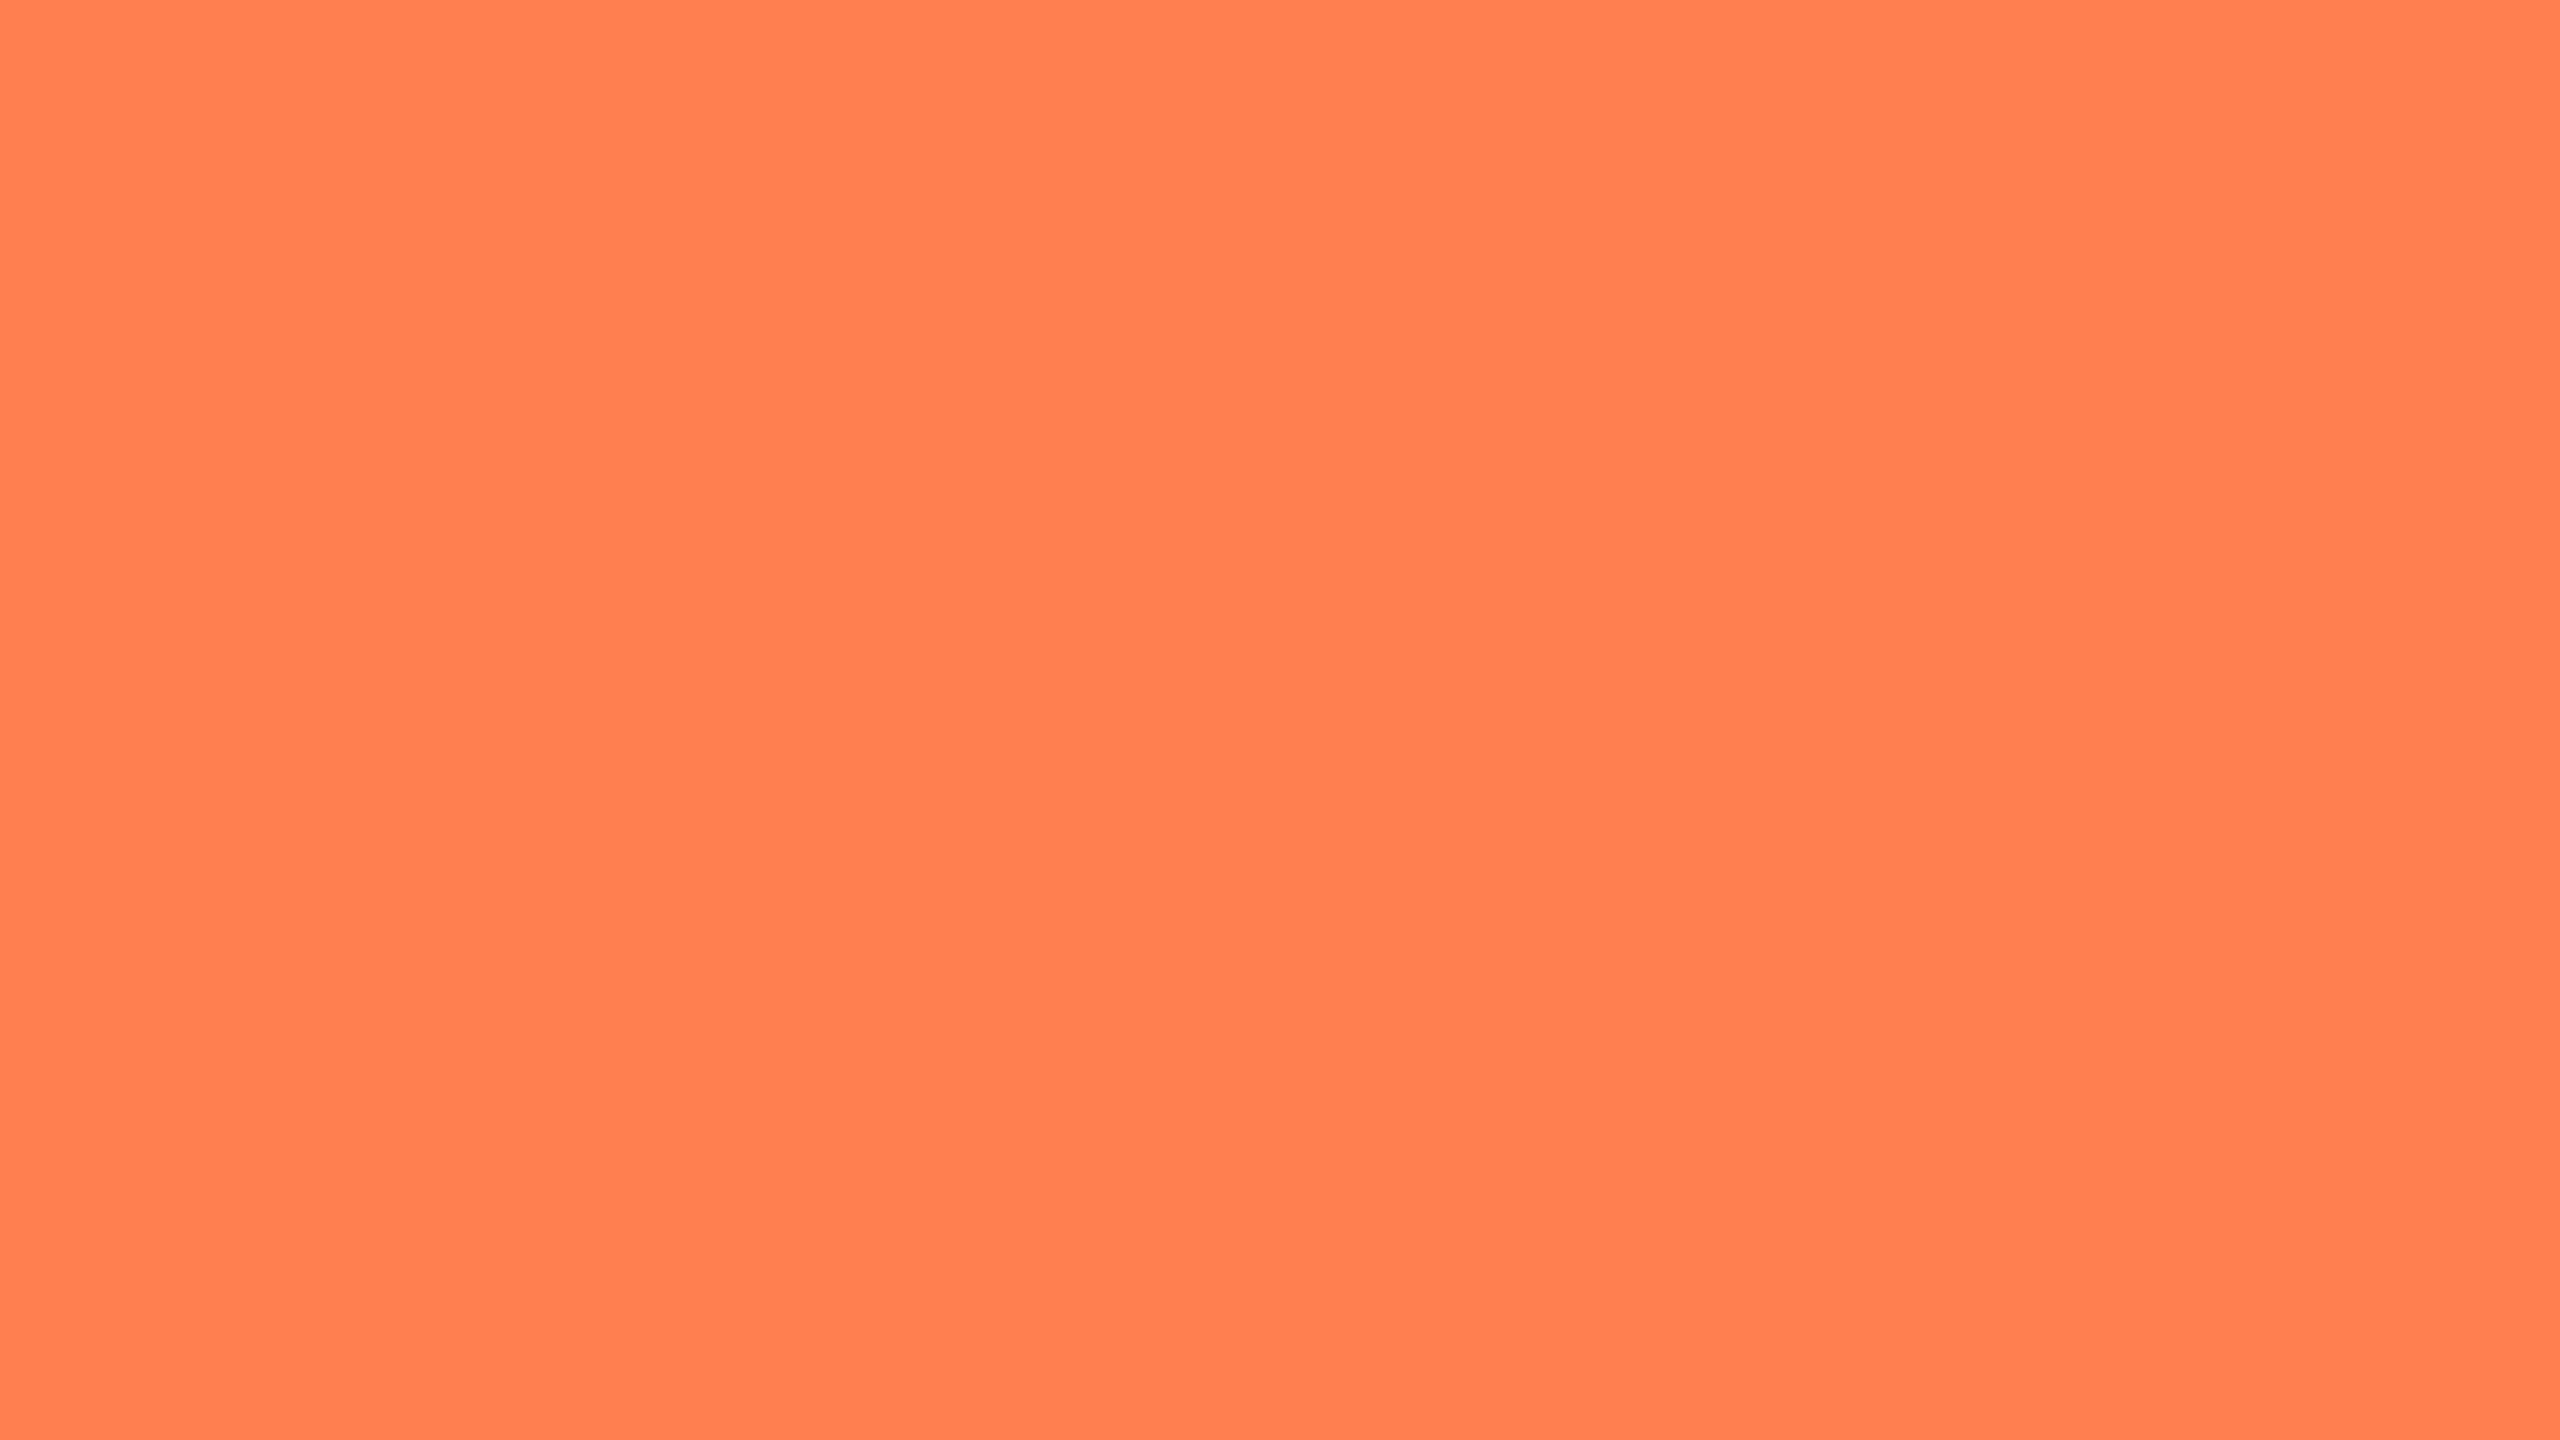 2560x1440 Coral Solid Color Background